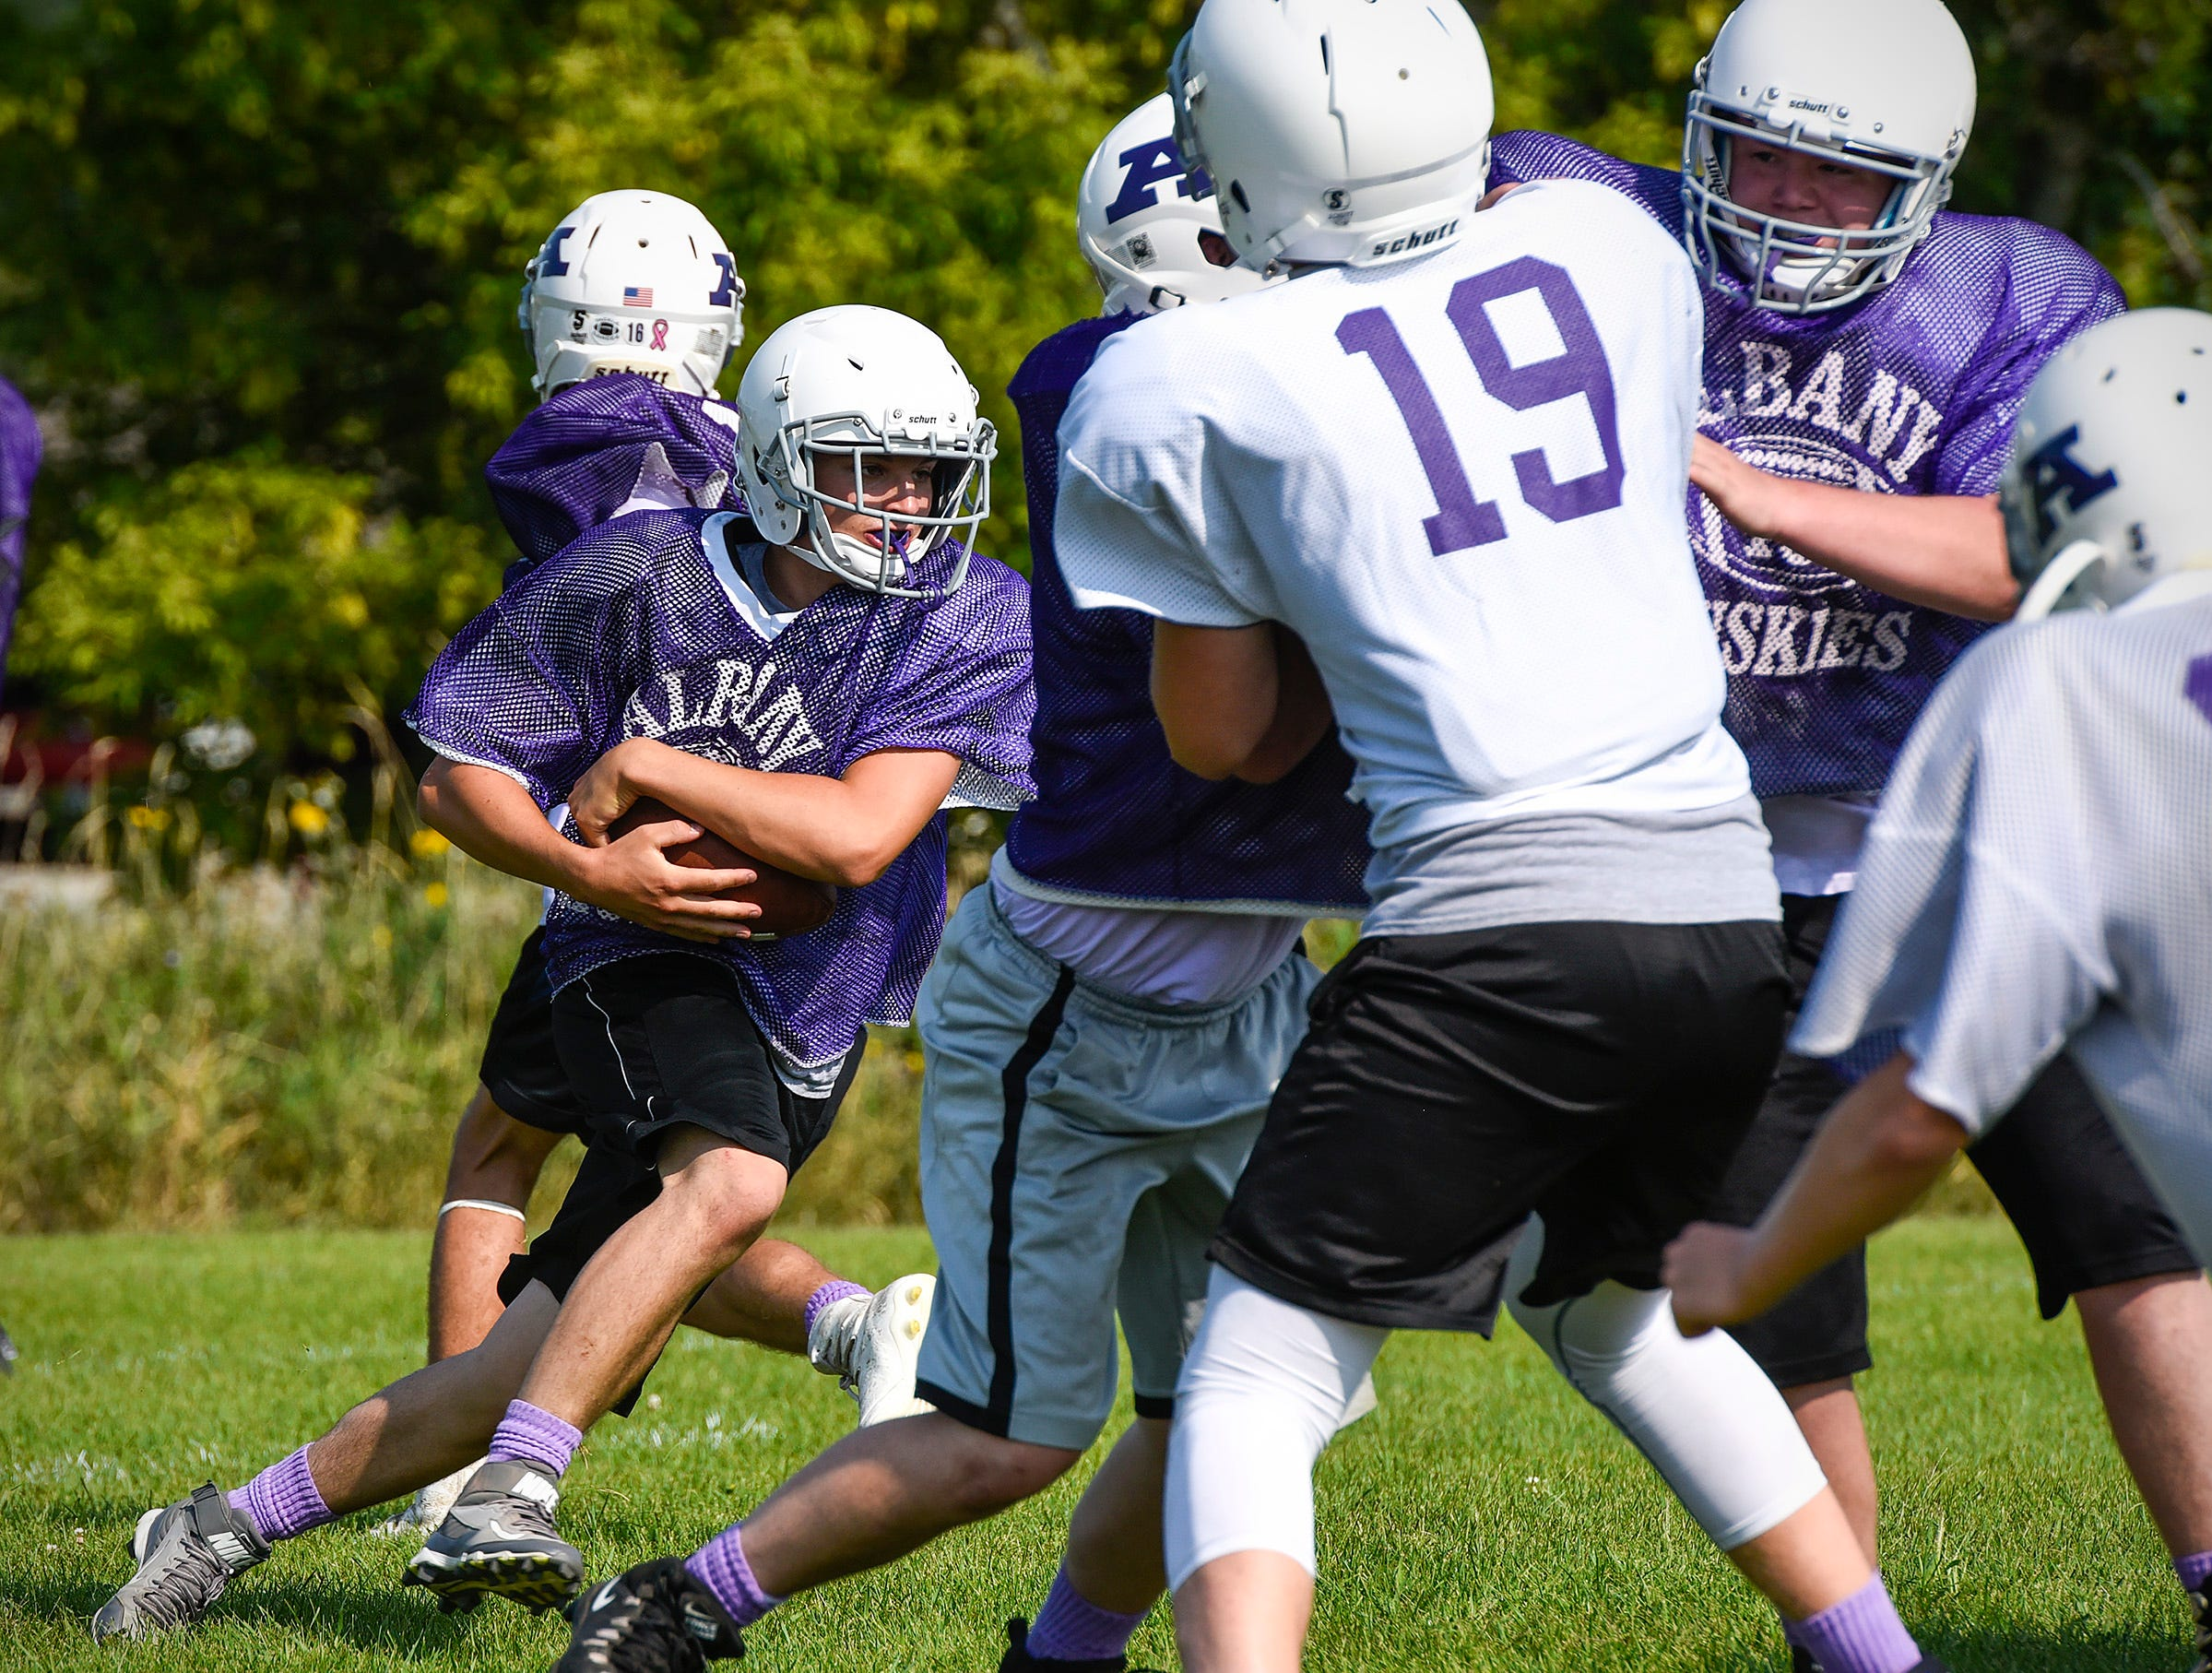 Albany Fullback Carter Kotzer cuts into the line with the ball on a play during practice Wednesday, Aug. 15, at the Albany High School.